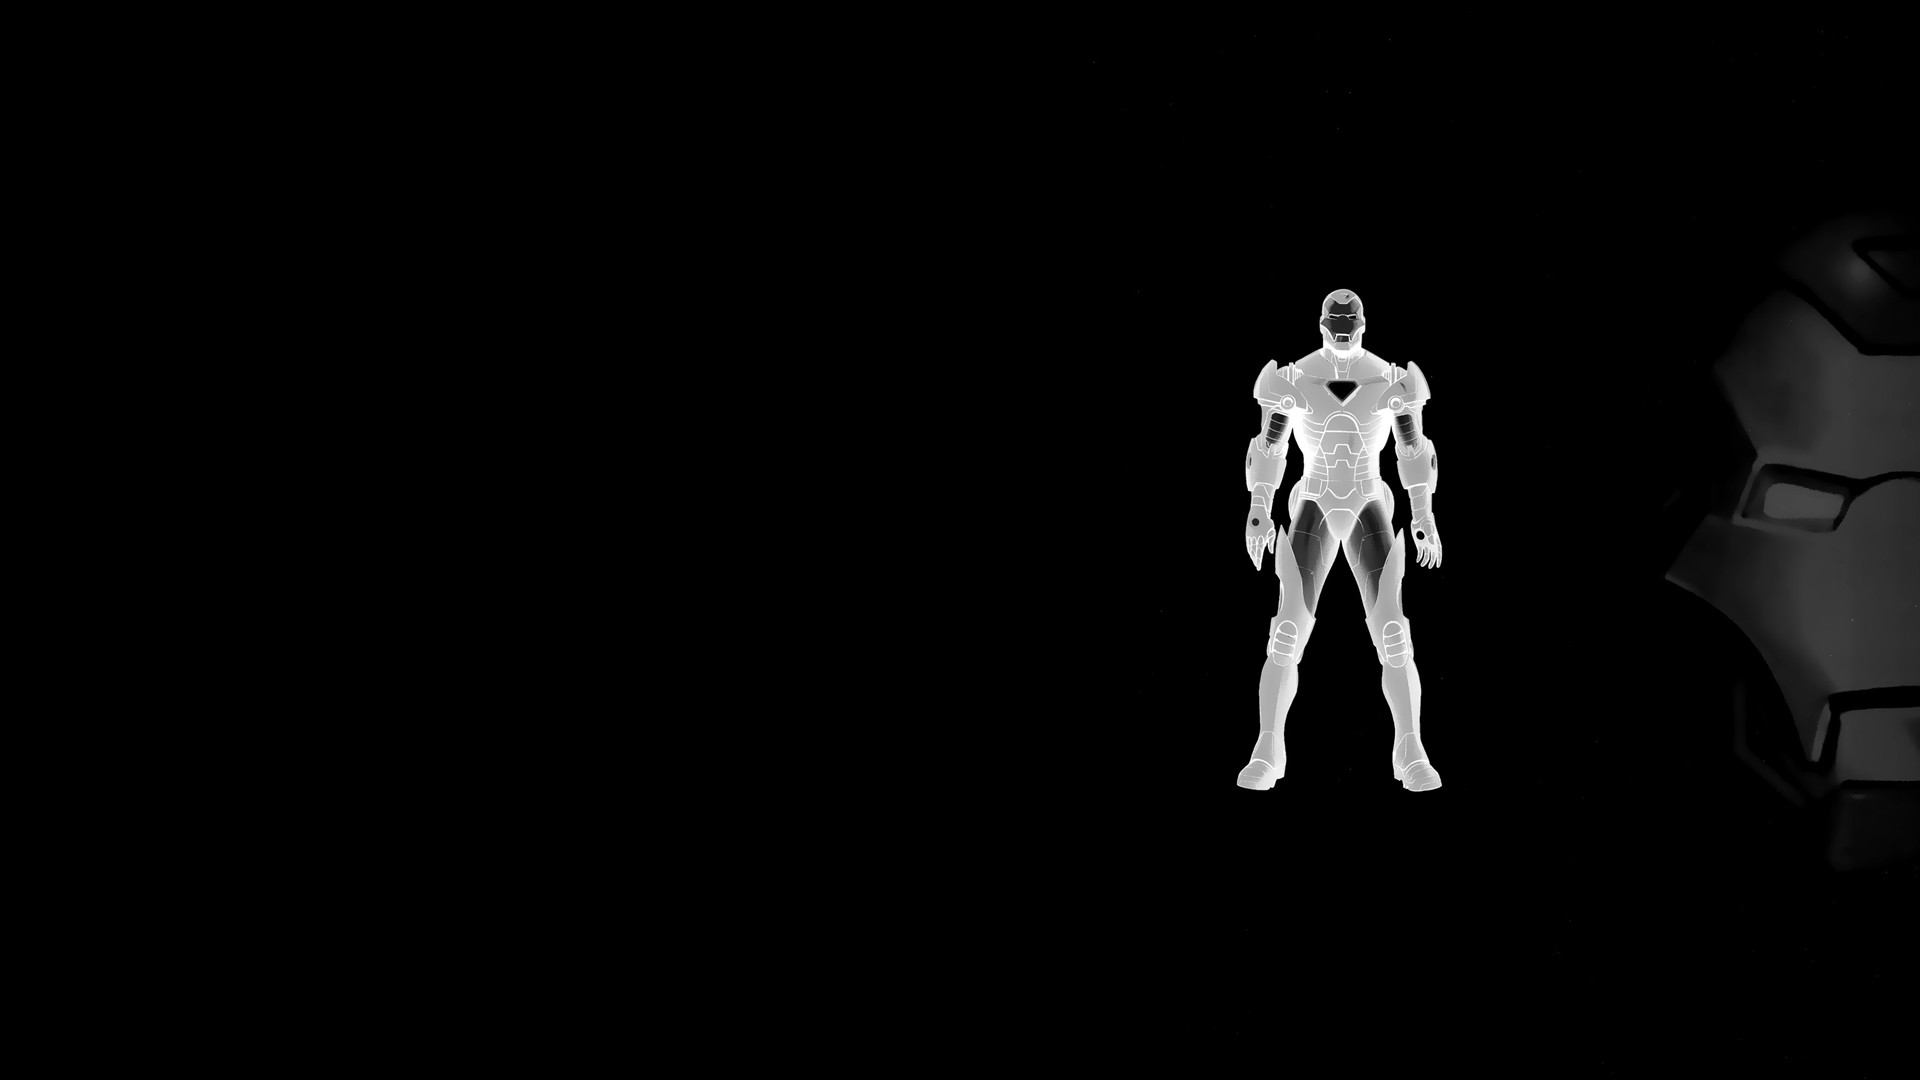 Movie Wallpaper: Iron Man Jarvis High Quality Wallpapers Wallpaper .